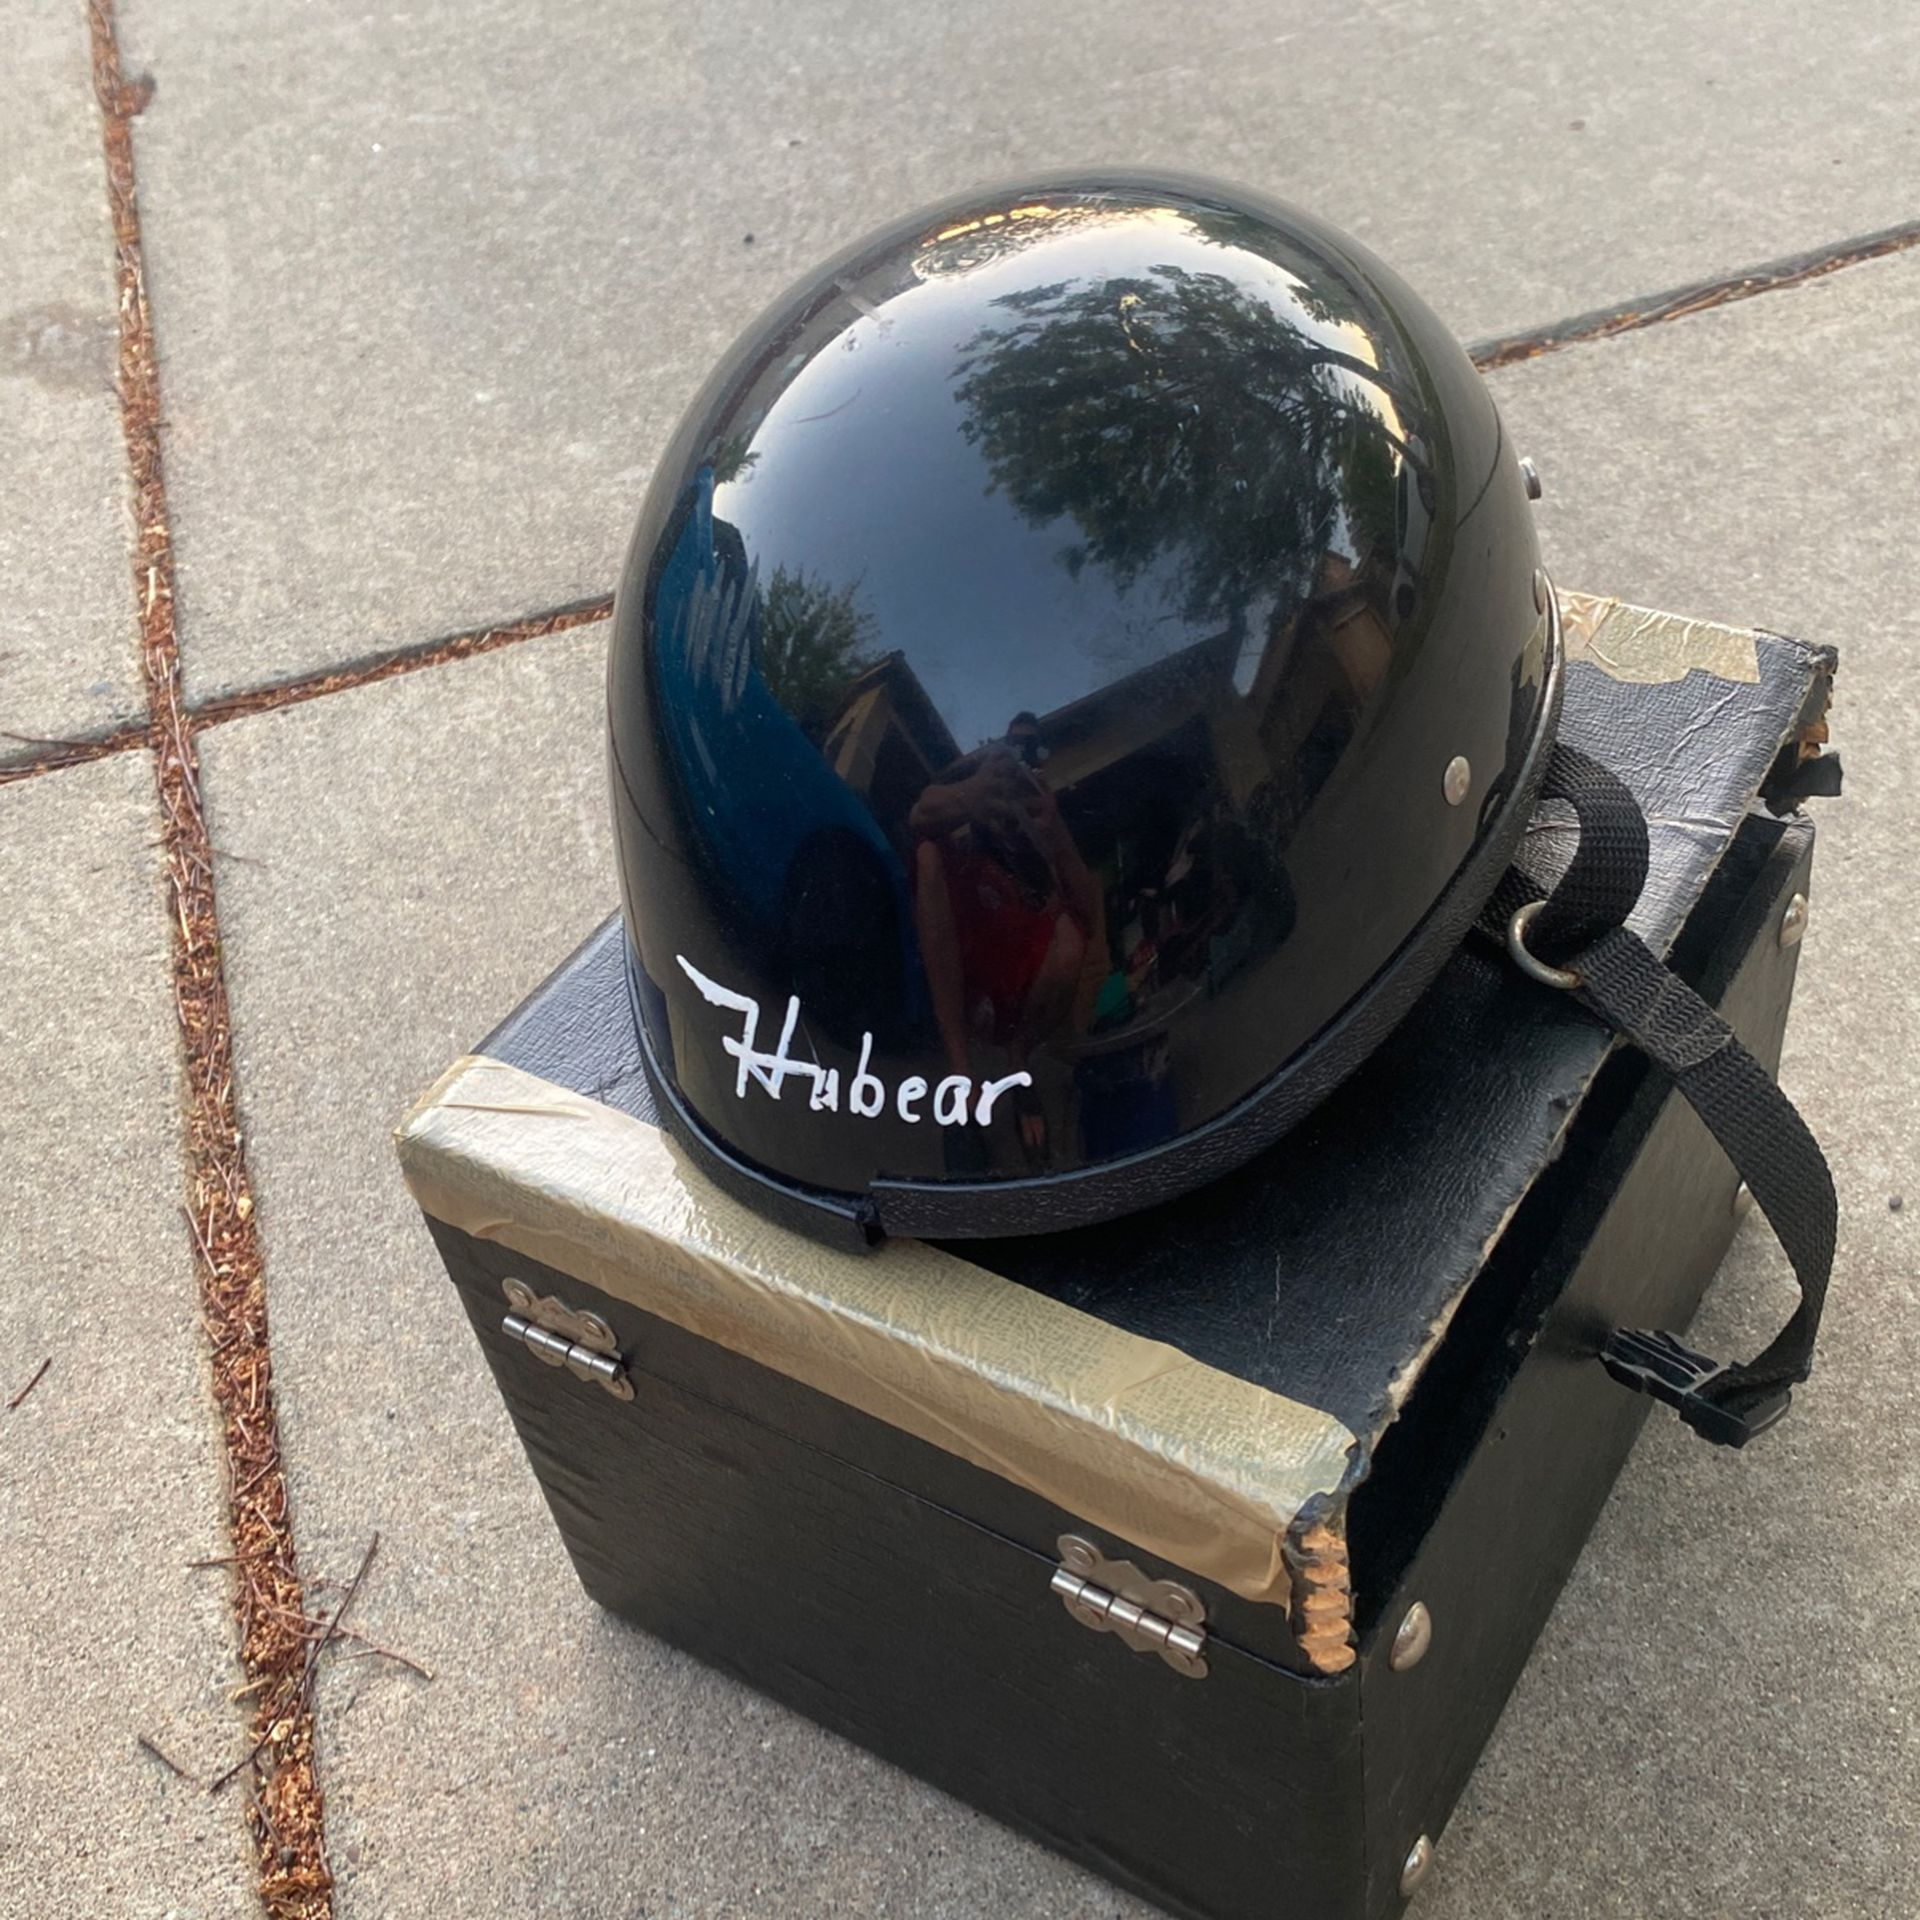 Small Size Harley helmet most likely for a woman